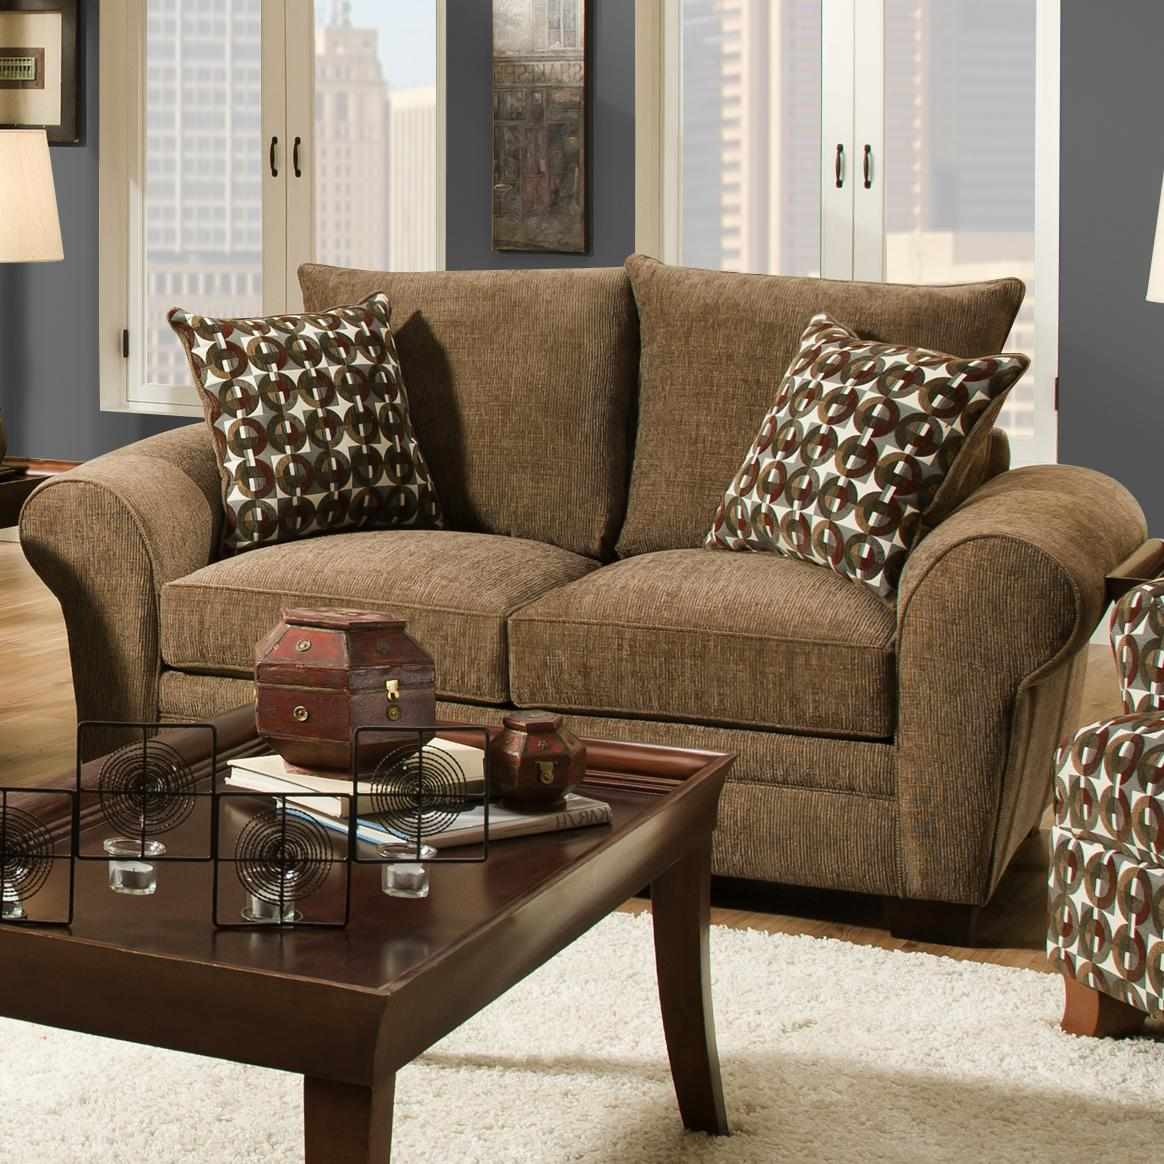 Traditional Styled Loveseat with Comfortable Look for Casual Family ...